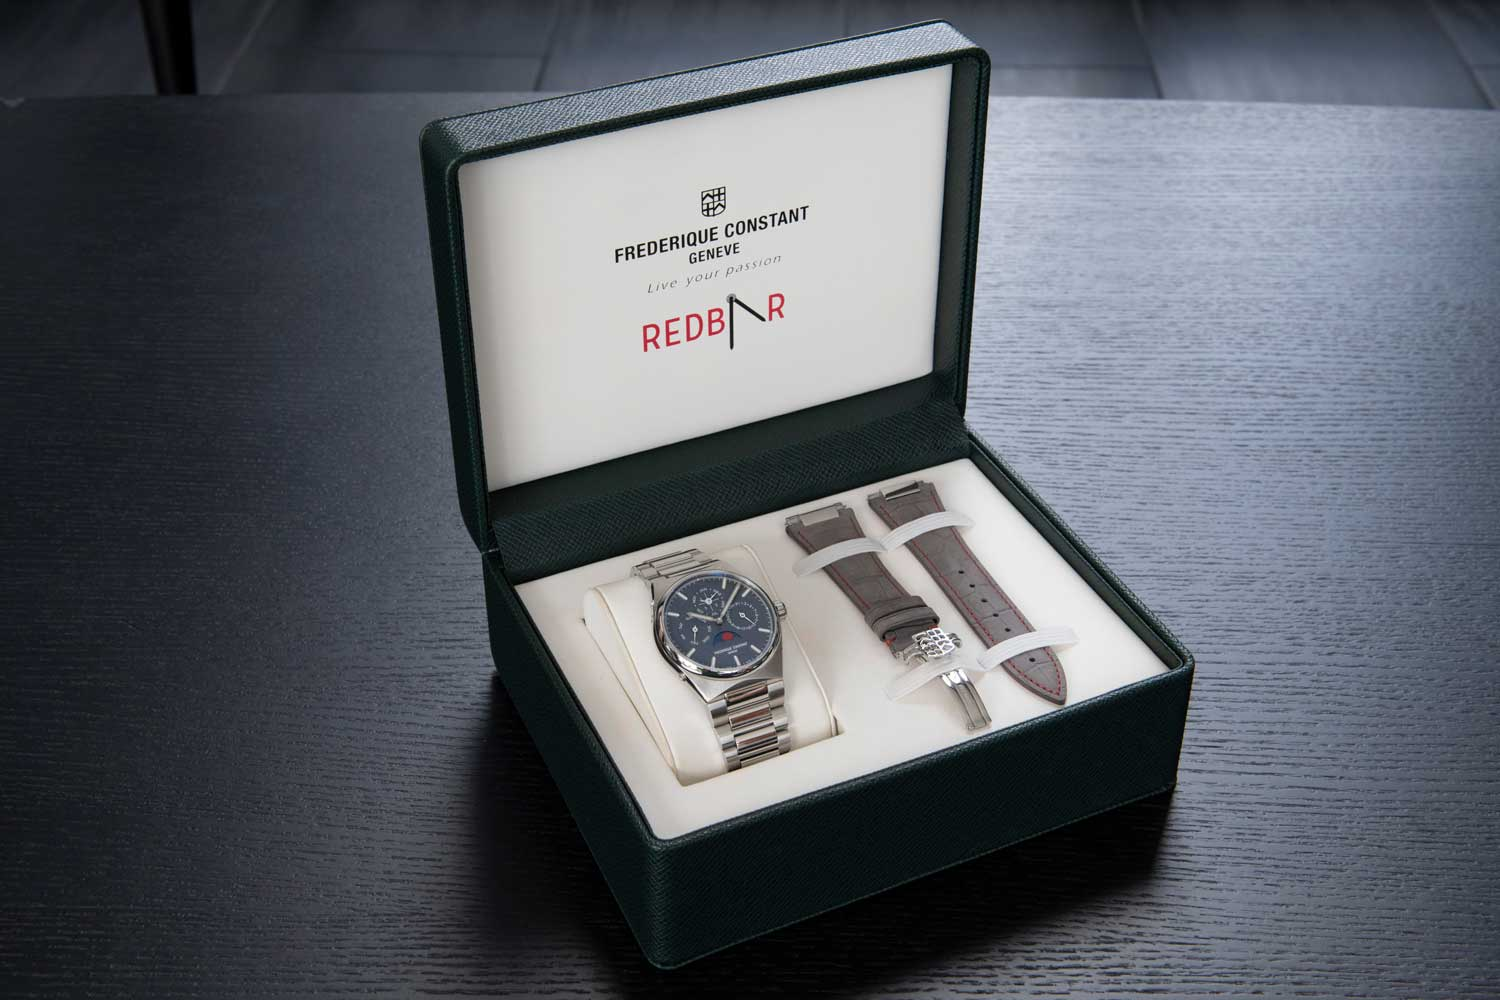 The watch is exclusively allocated to RedBar members only.